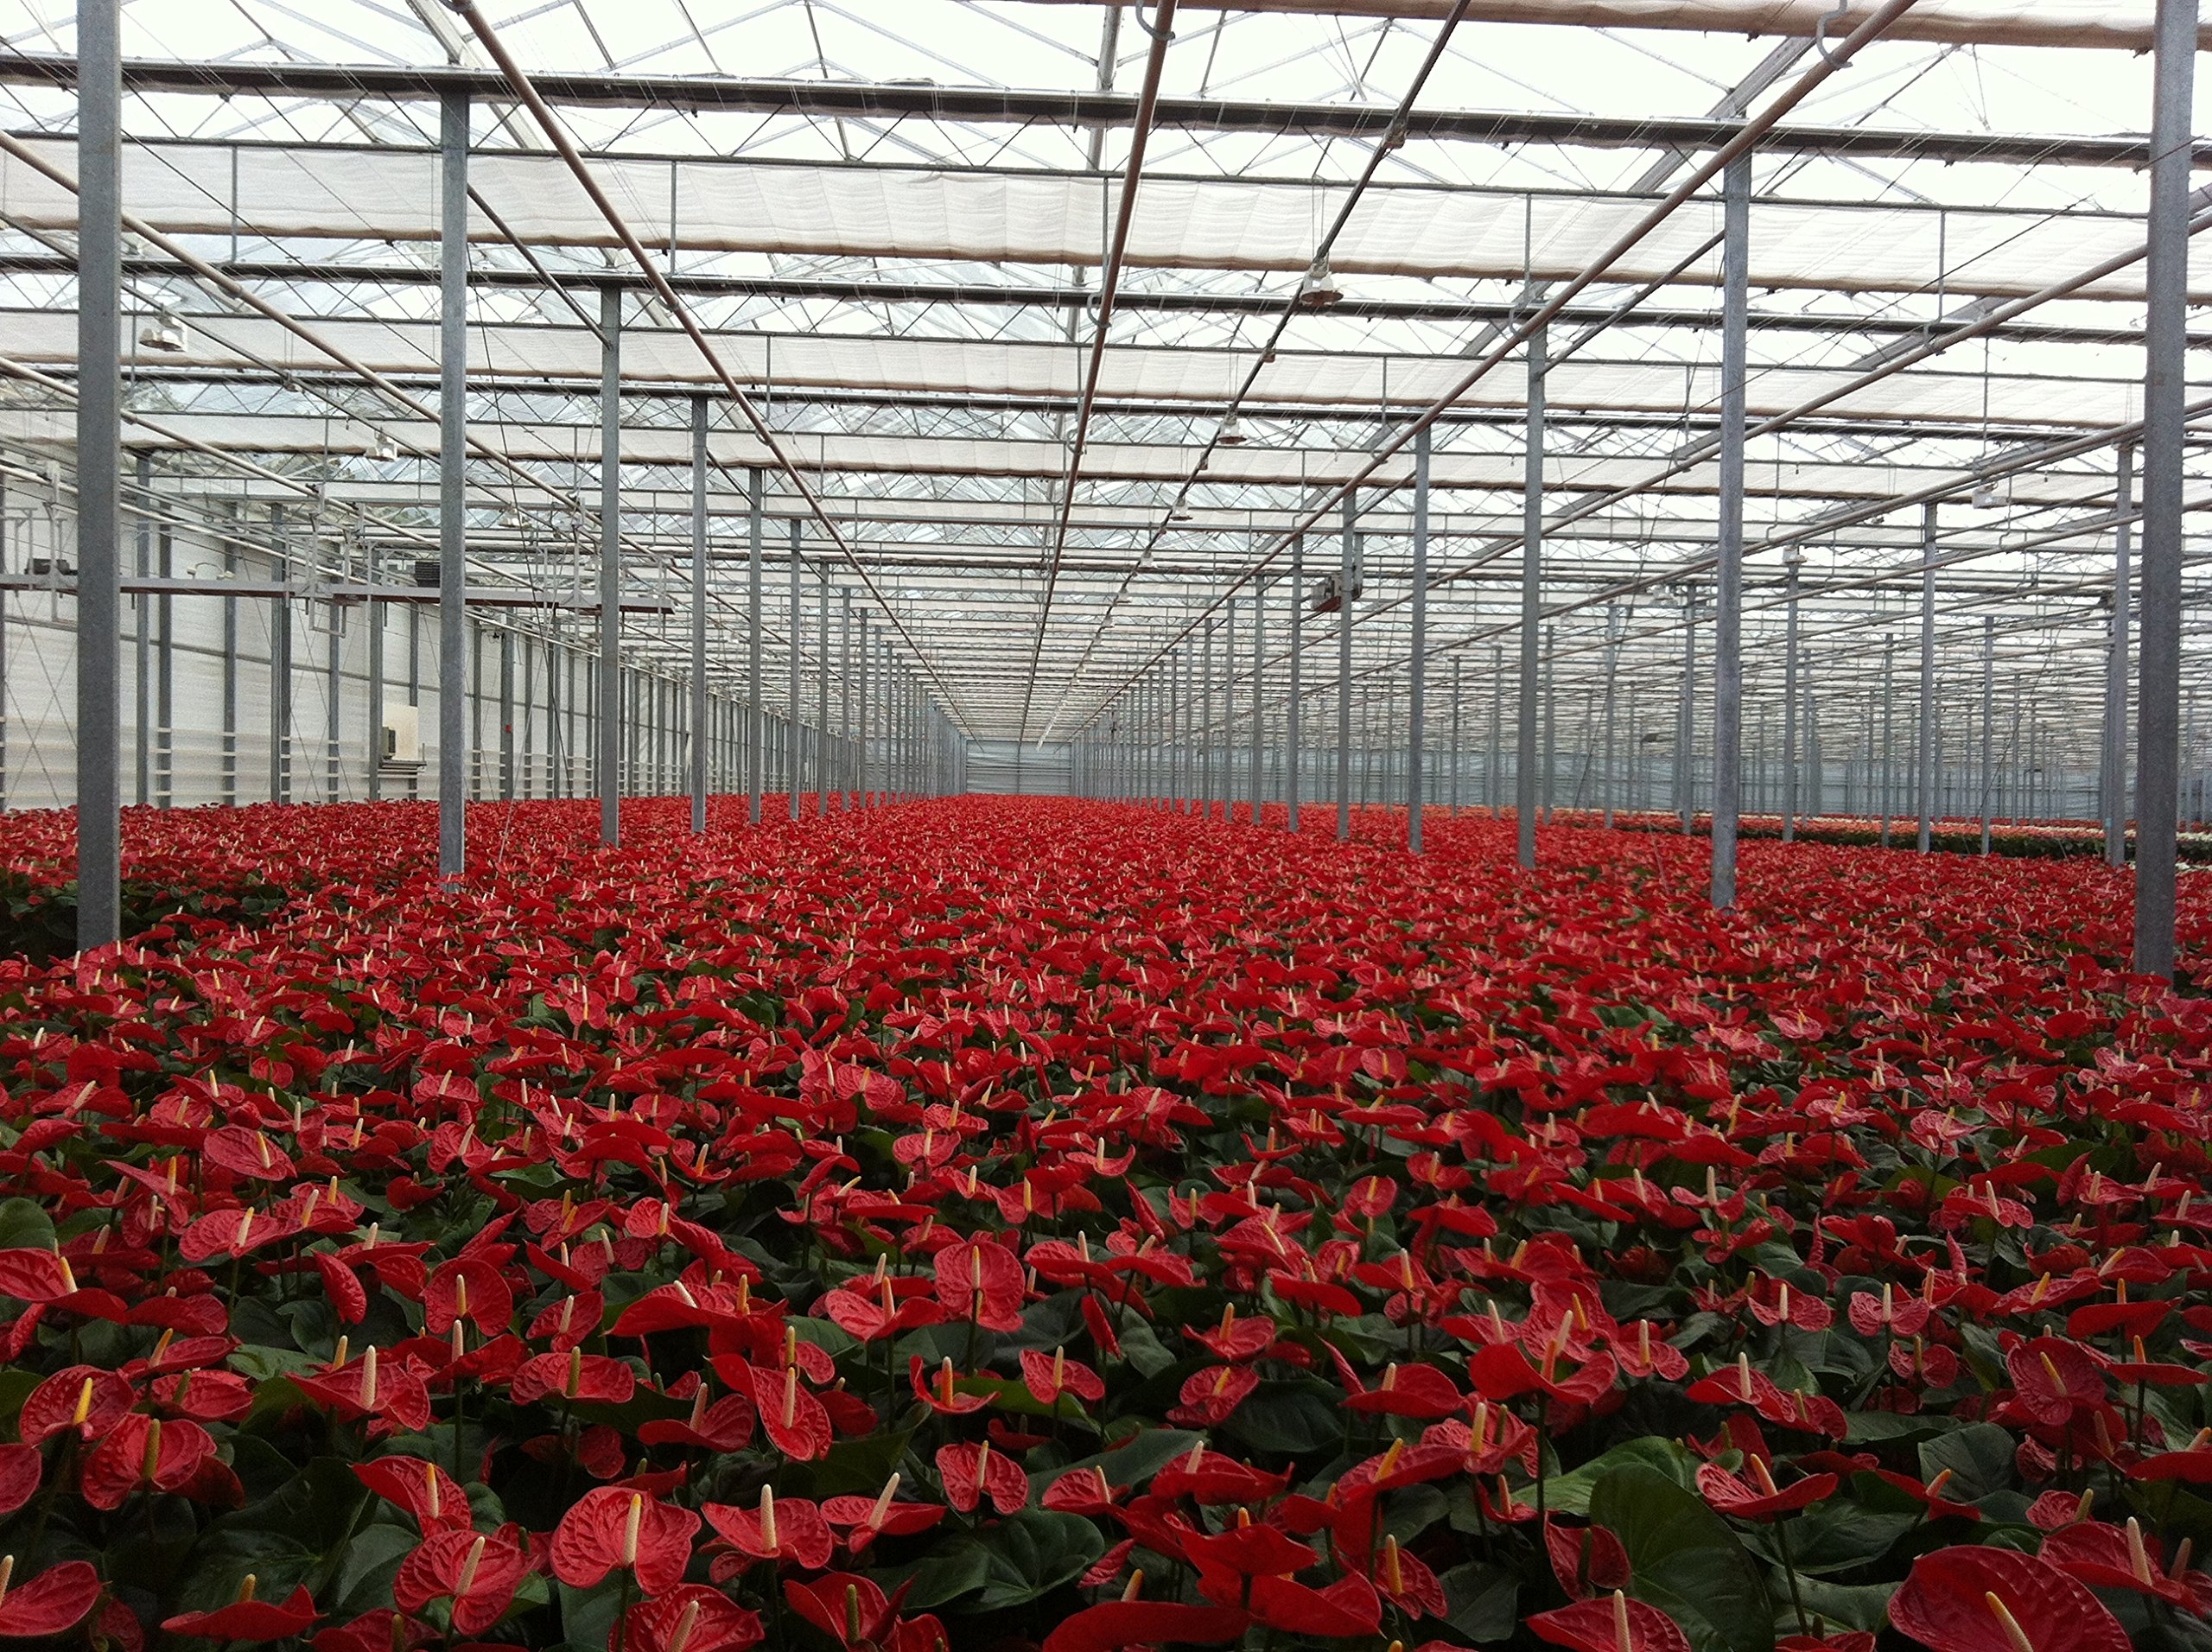 Anthurium Red - Live House Plant - Easy to Grow - Florist Quality - Cleans the Air by Florida Foliage (Image #5)